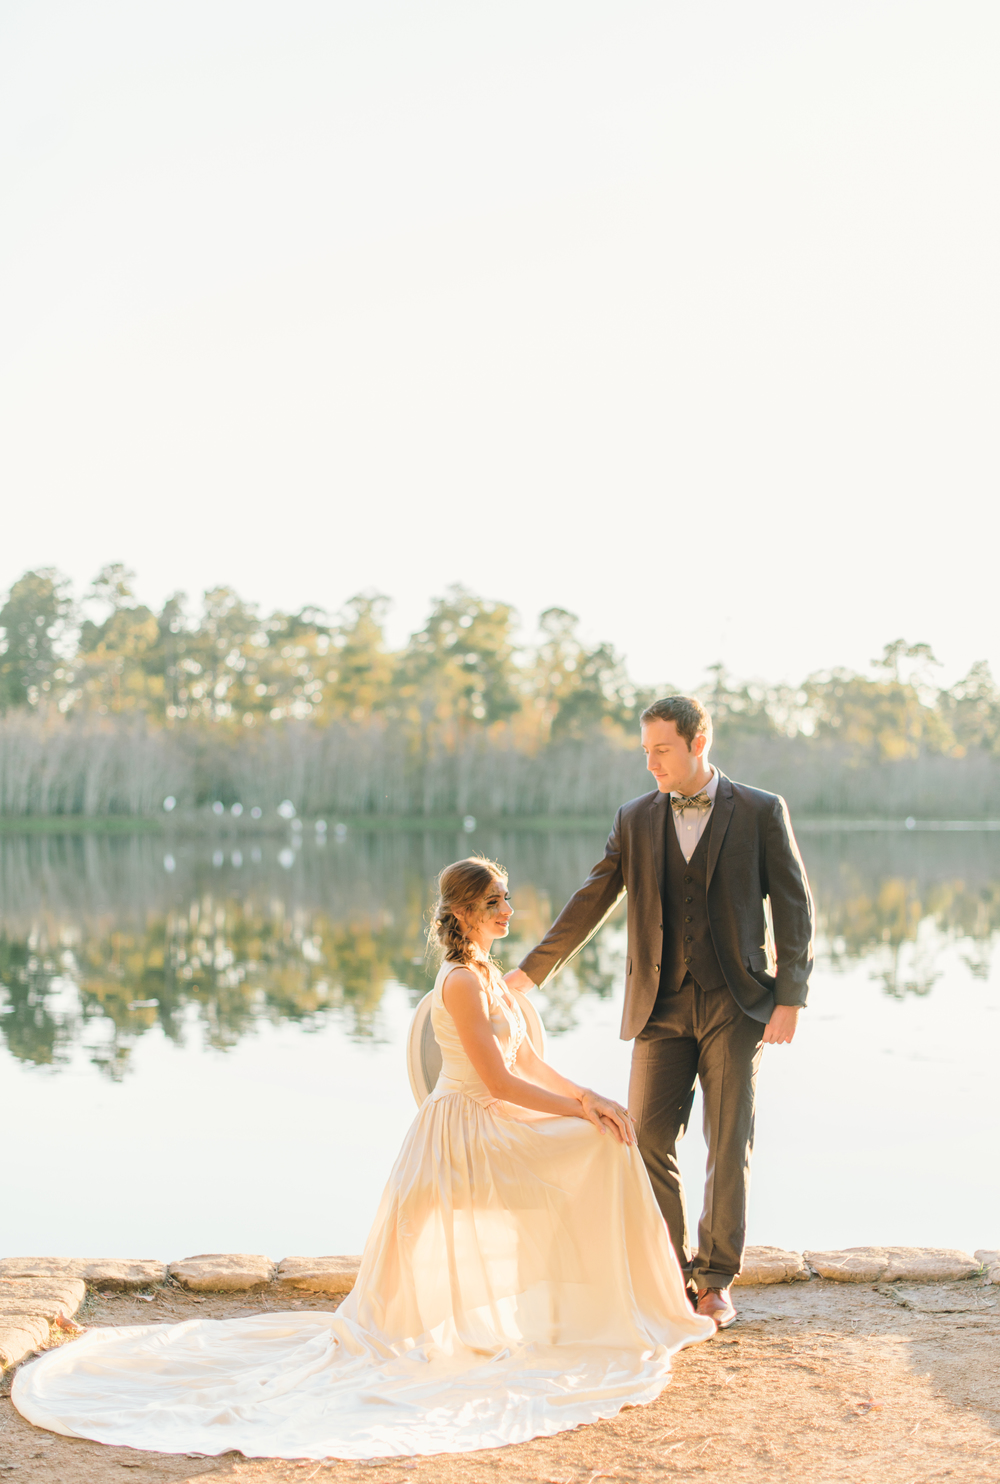 PainterlyWoodlandWeddingInspiration-75.jpg